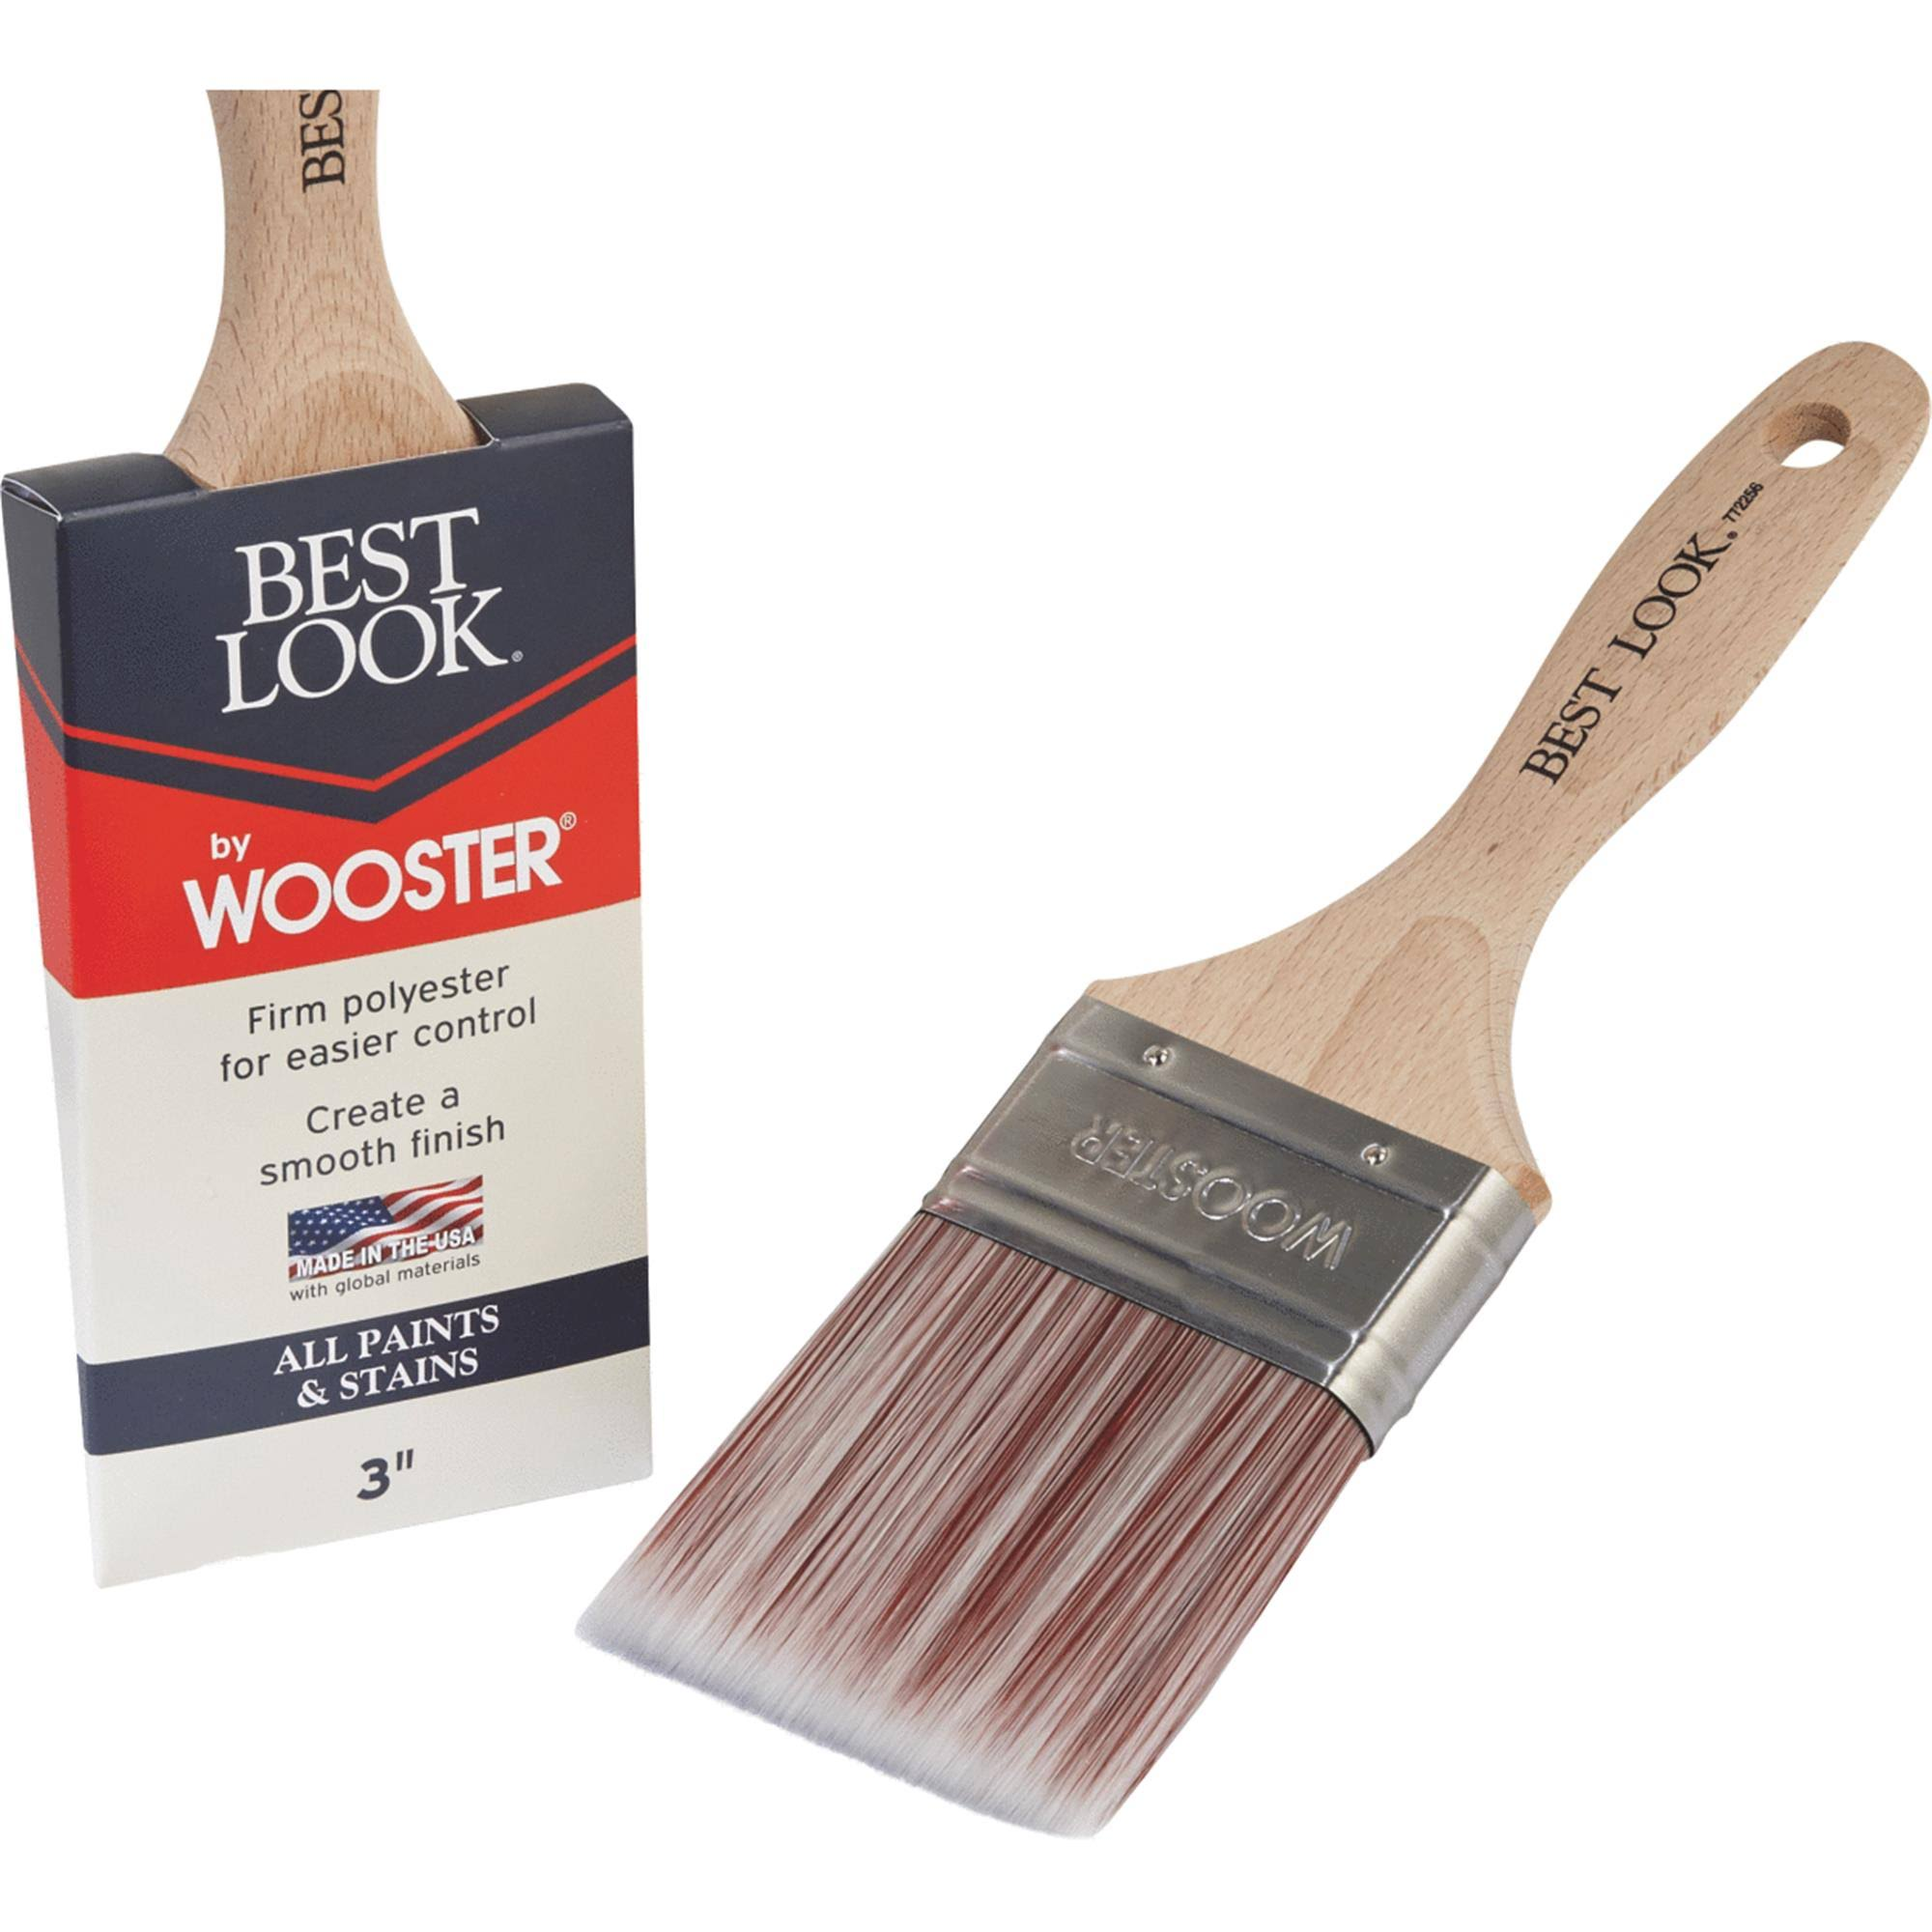 Best Look by Wooster Polyester Paint Brush - D4024-3